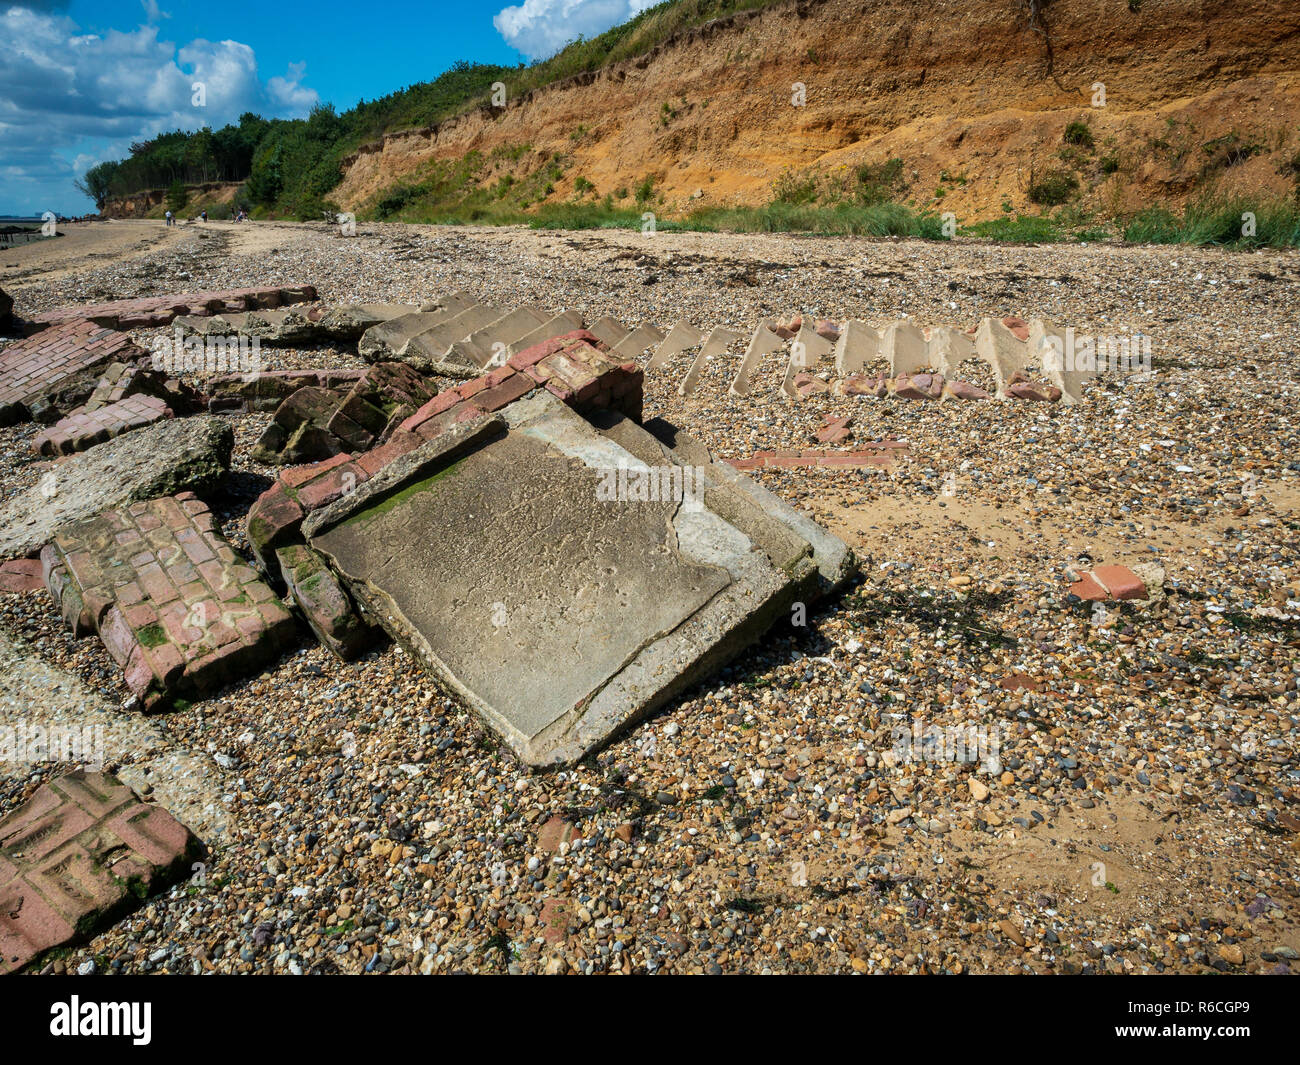 World War 2 fortifications destroyed by erosion Mersea Island Essex - Stock Image